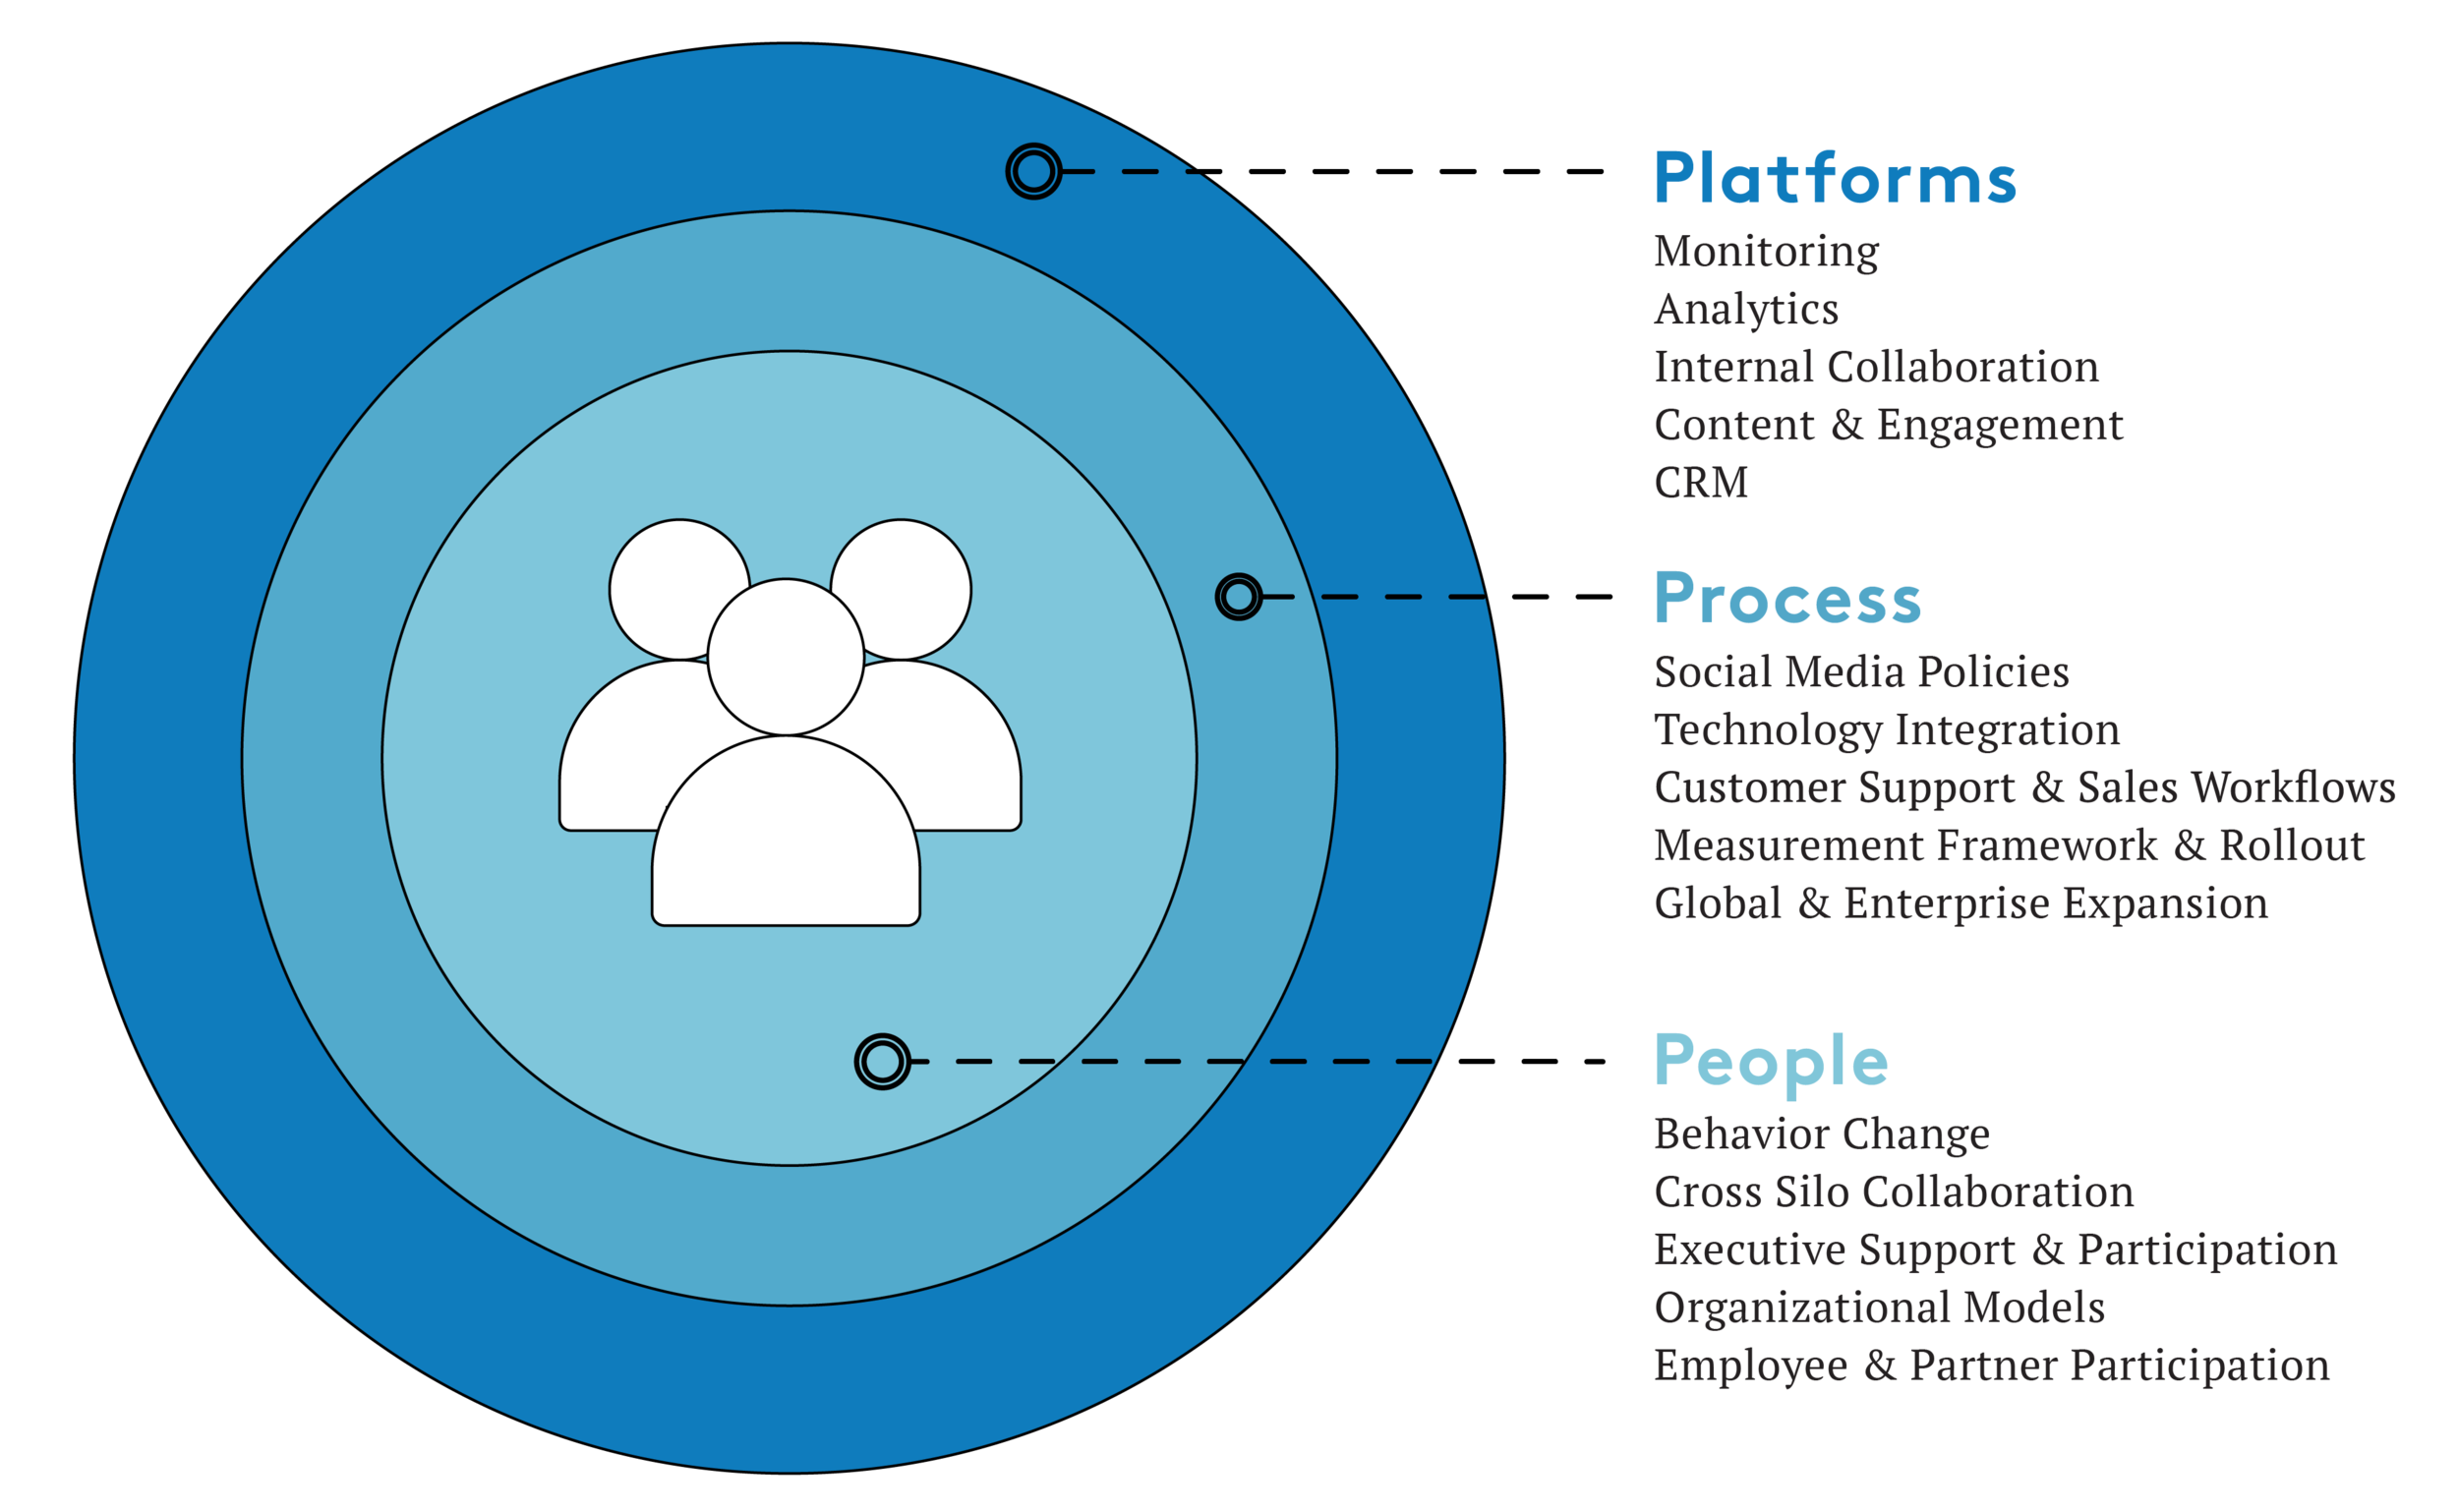 Fig 1.2: Putting people at the center of Digital Transformation Initiatives helps build a strategic foundation